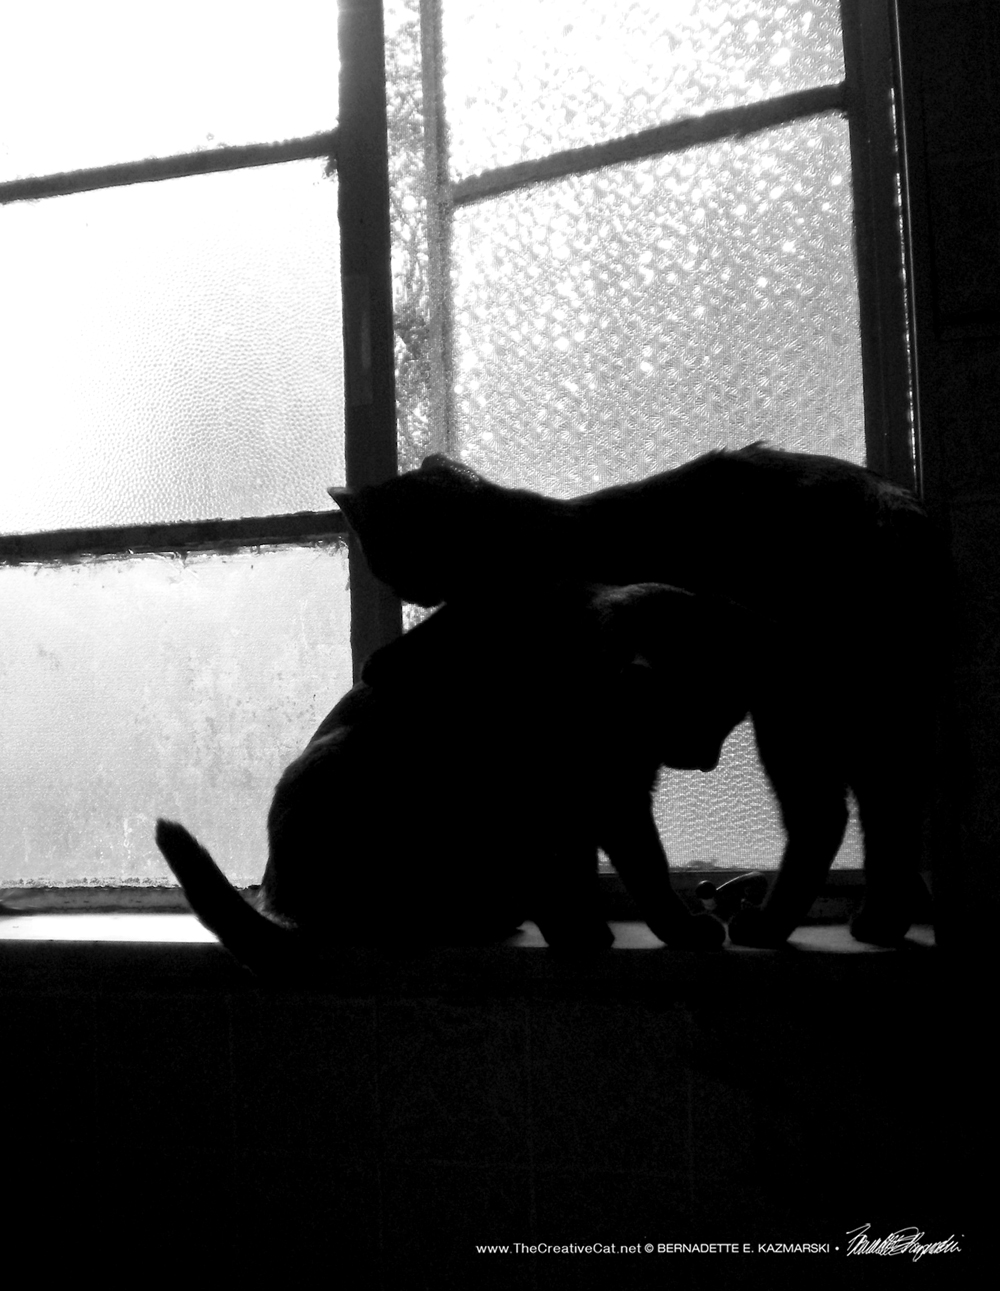 Passing on the windowsill.